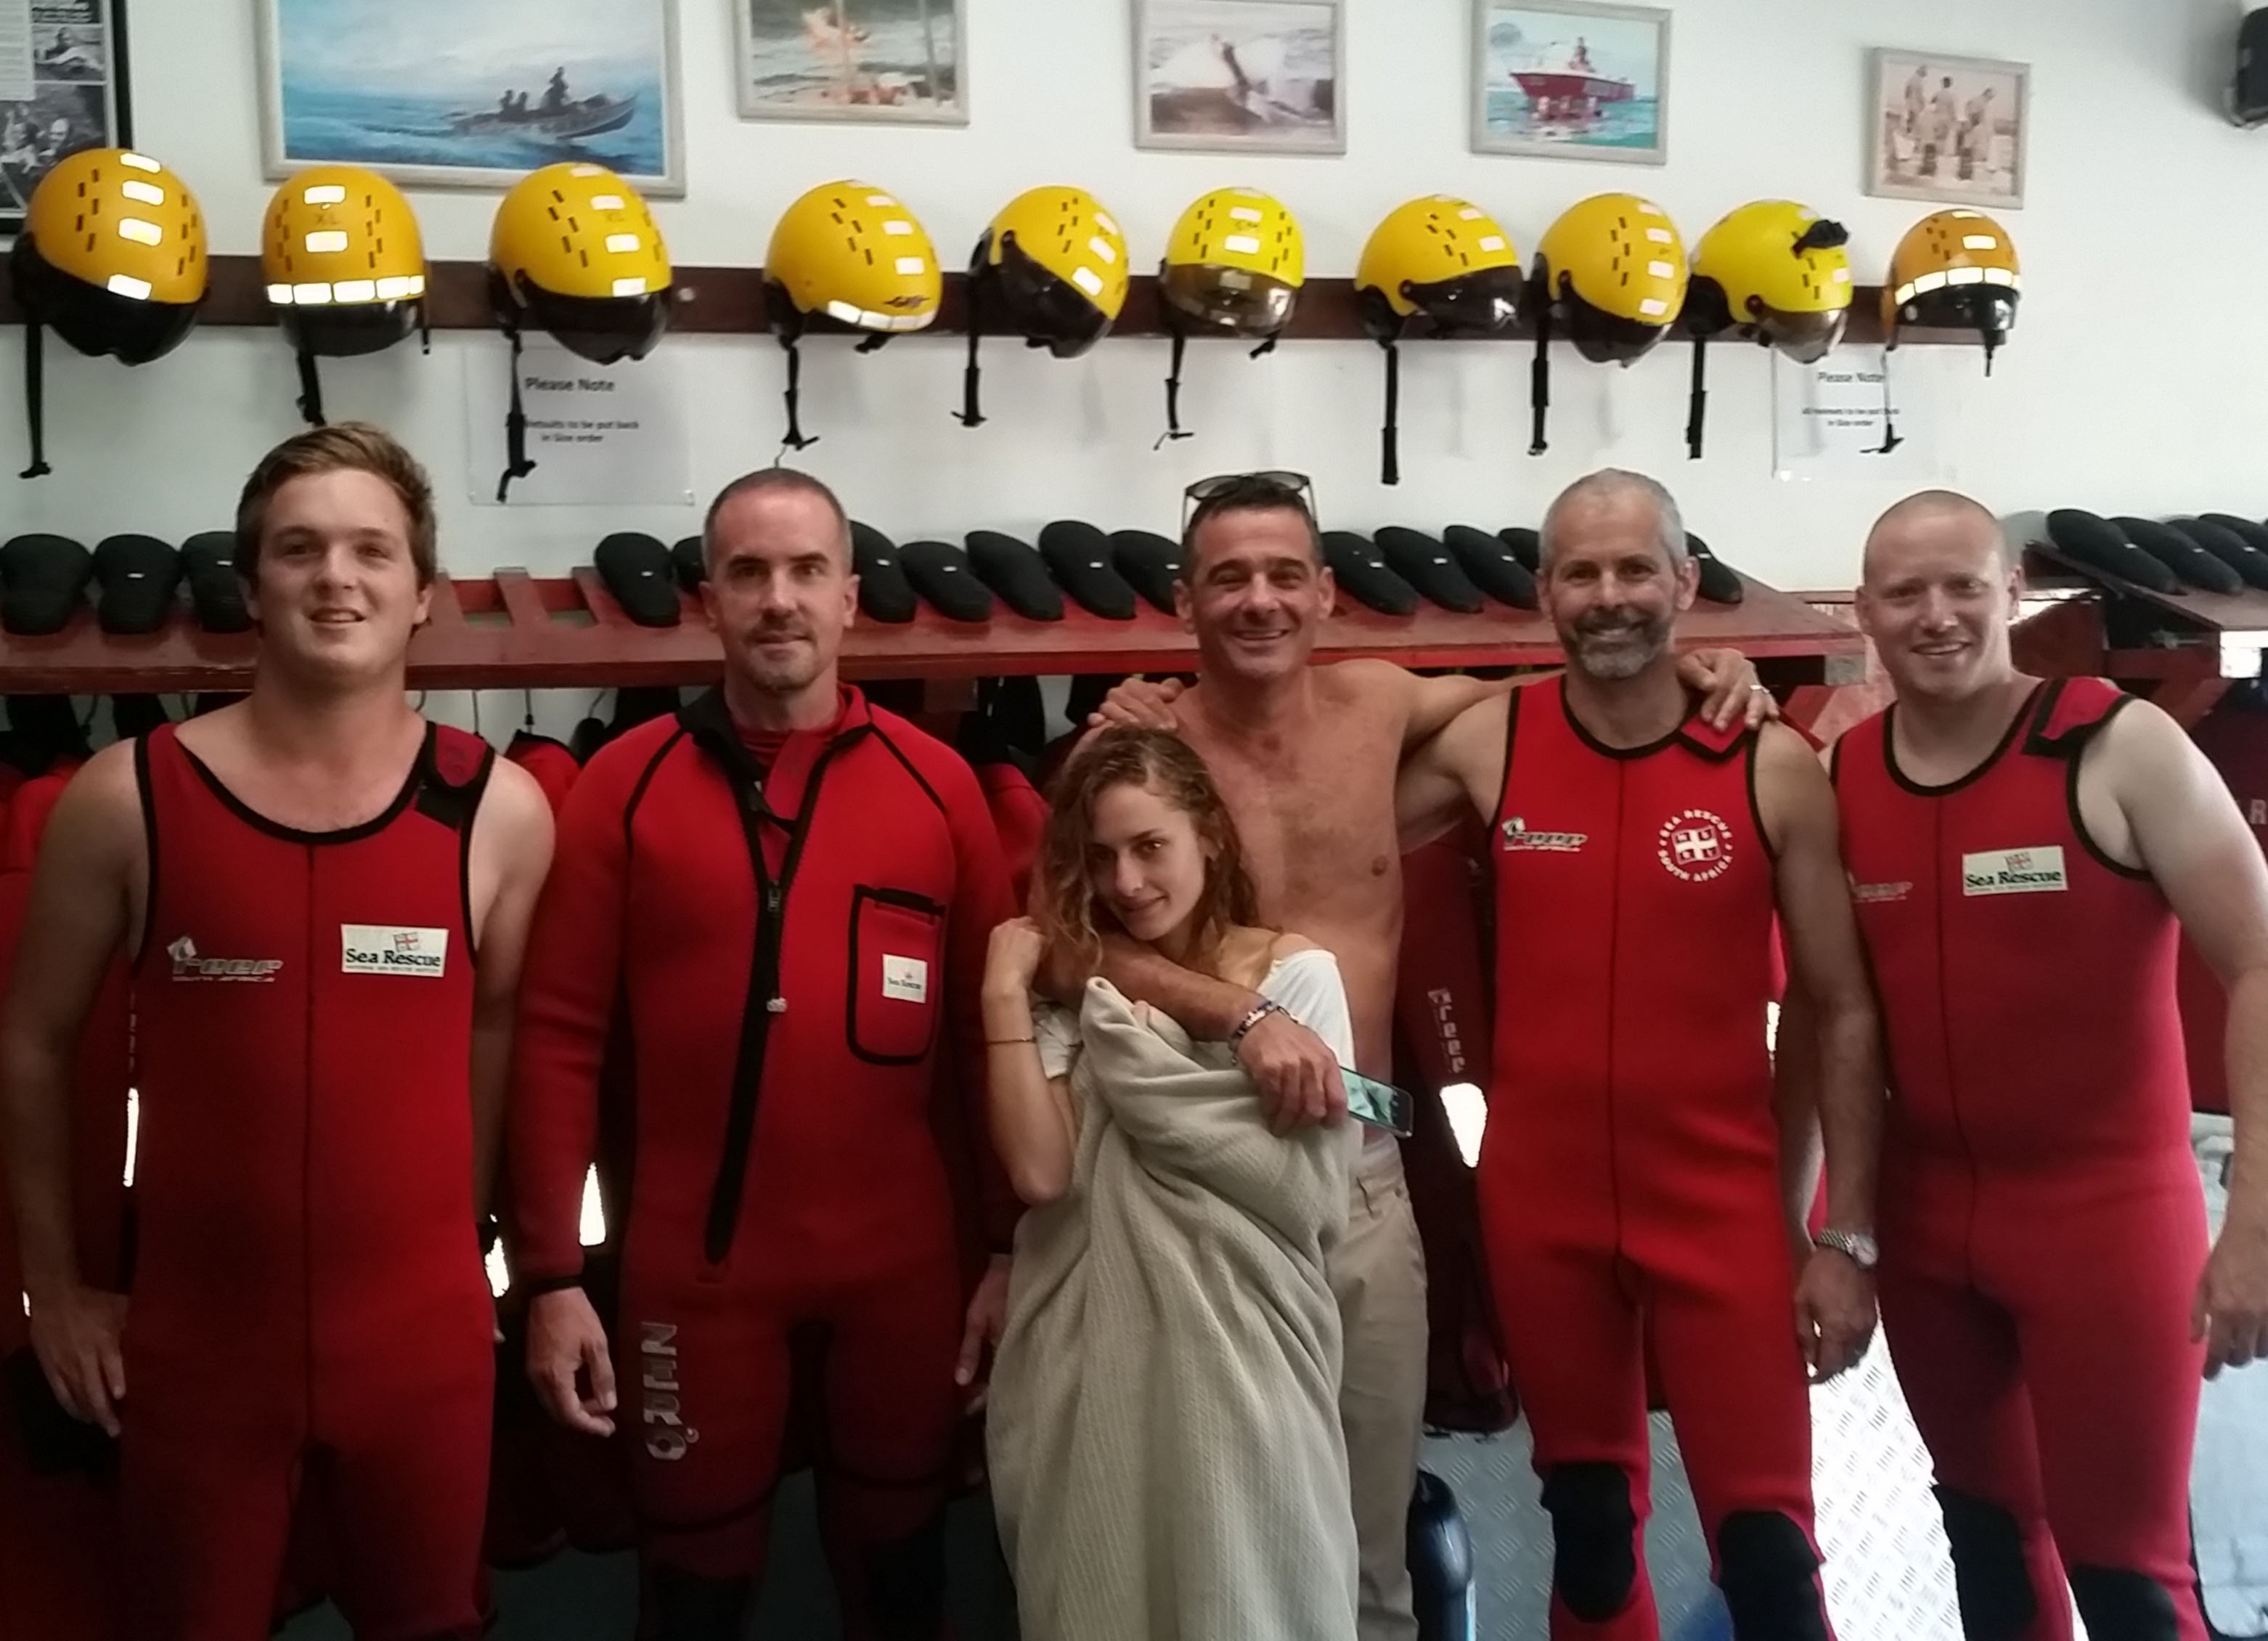 The rescue crew of Alex Albert, Bernard Schaefer, Danielle and her Dad Phillippe Hasson, Mark Thompson (Coxswain) and Luke van Riet.